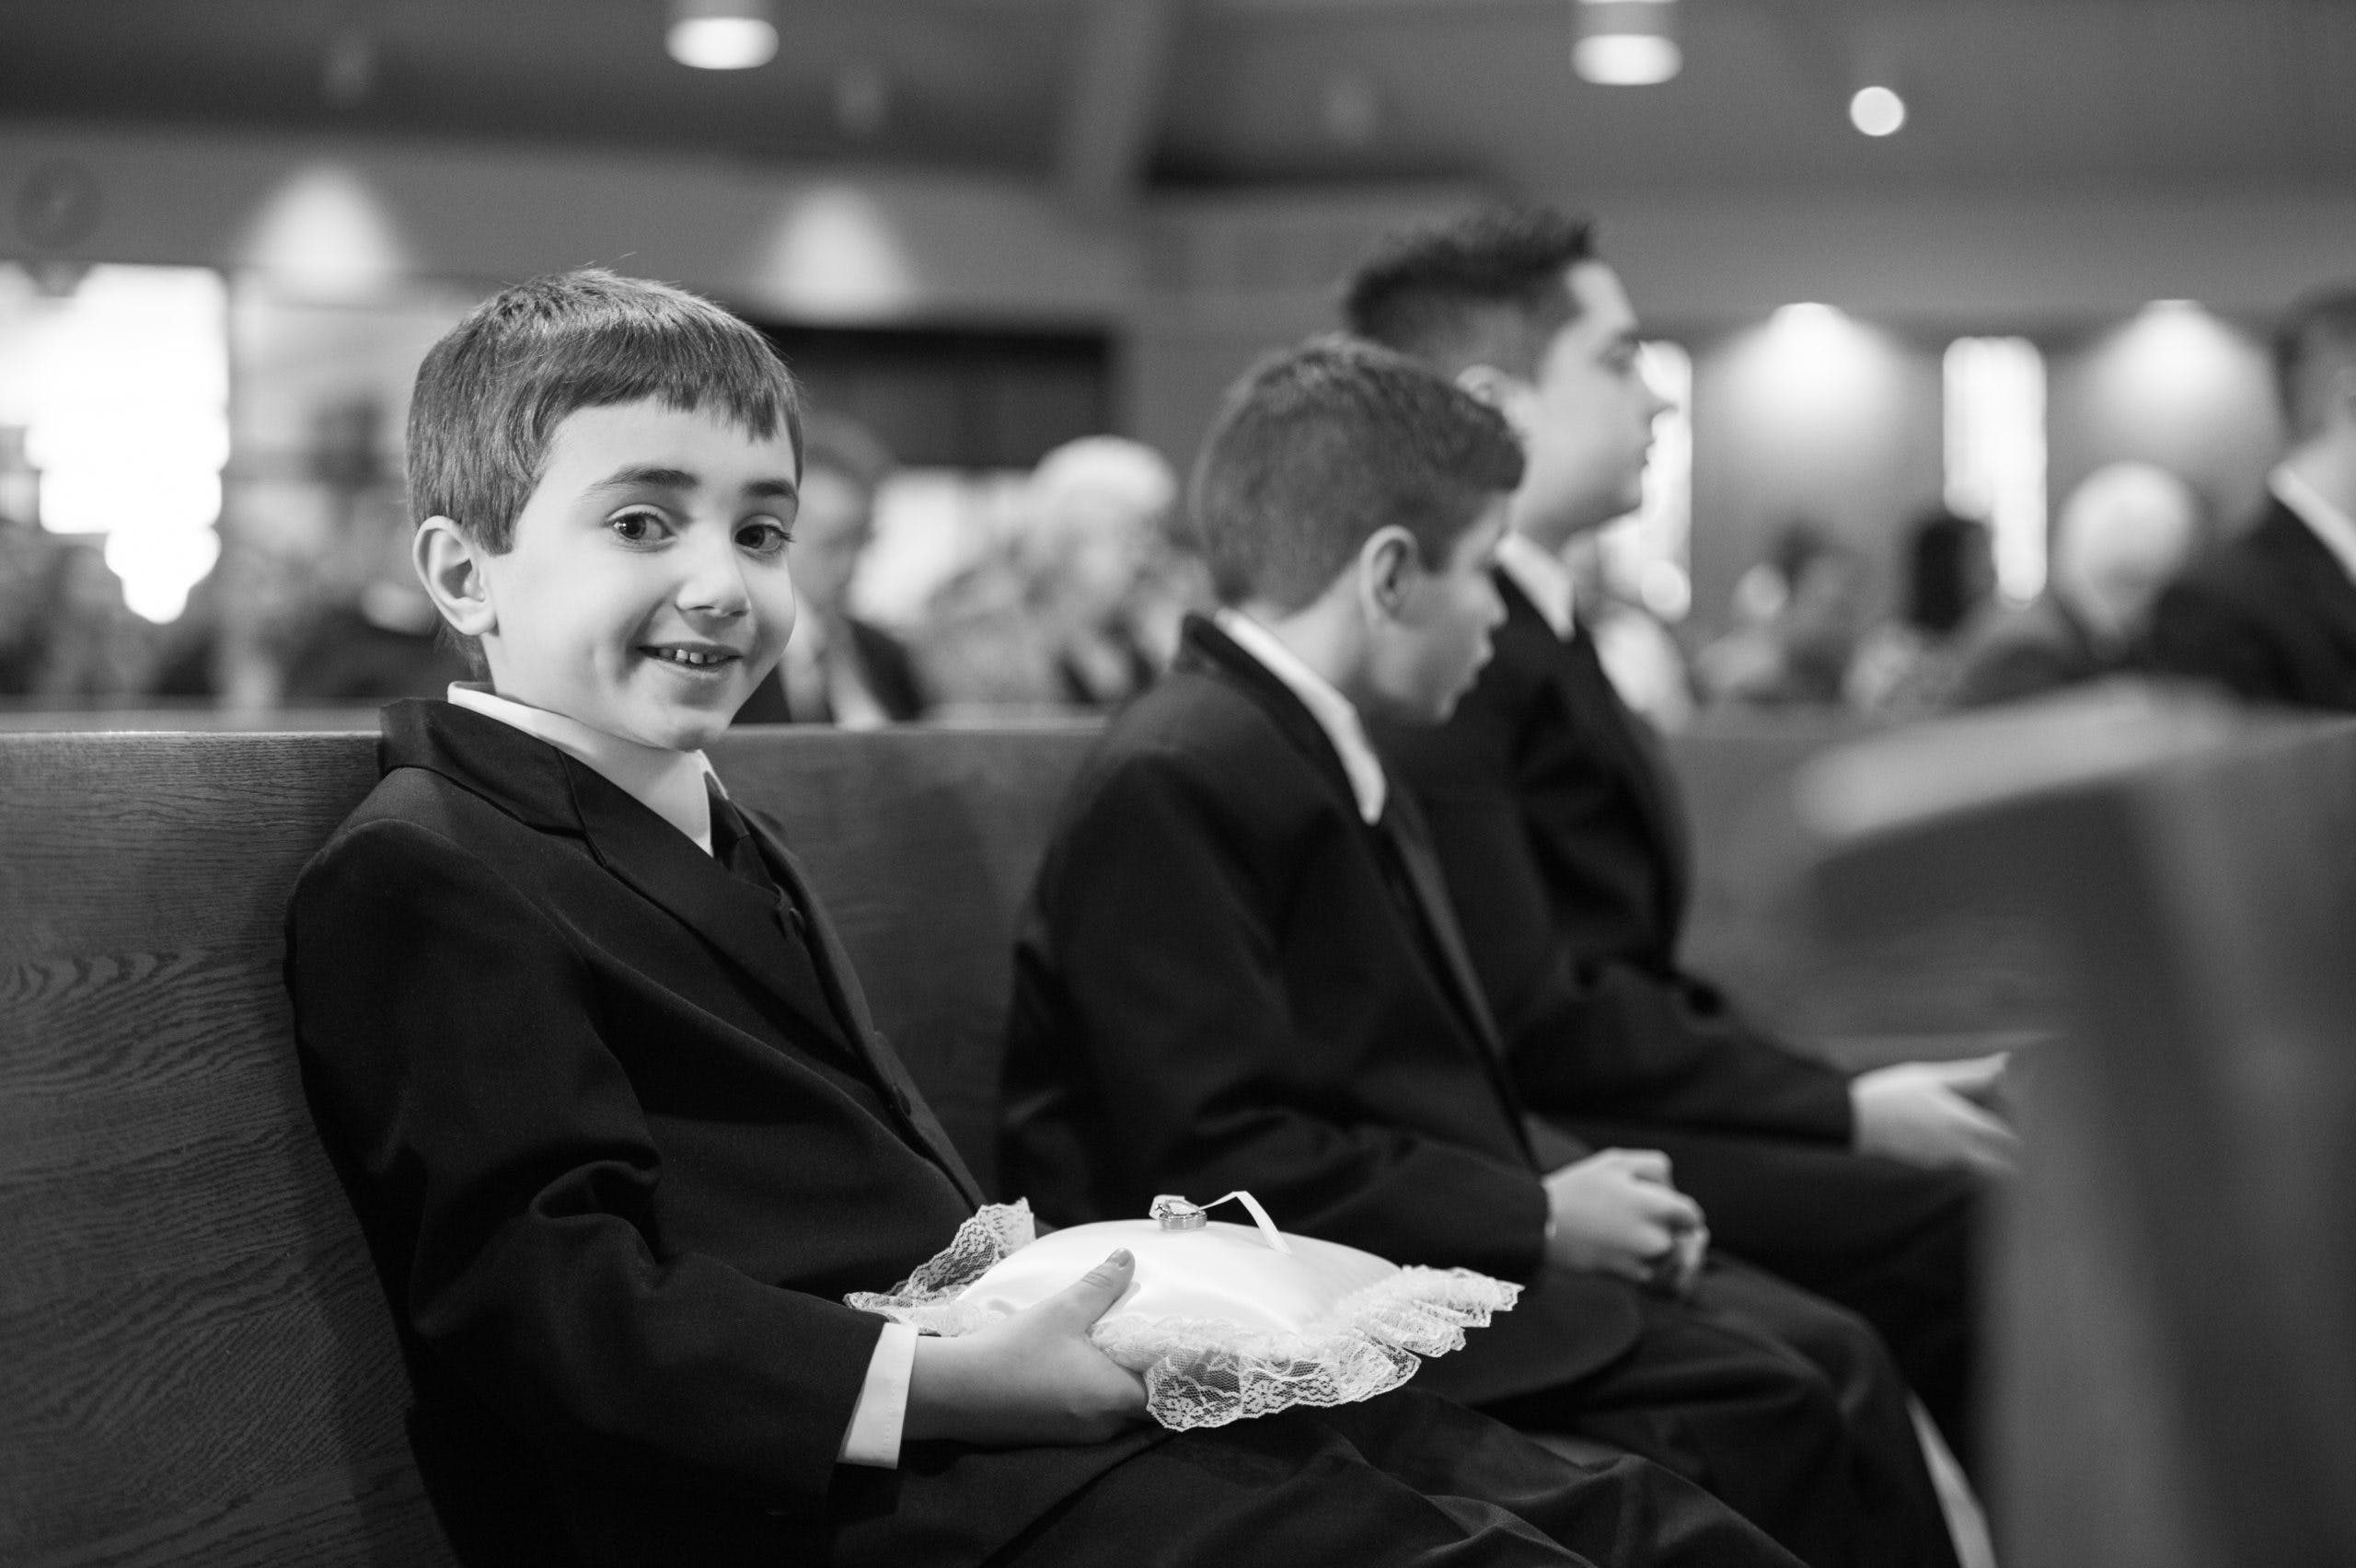 Black and white photo of two young boys sitting in church pue l PartySlate